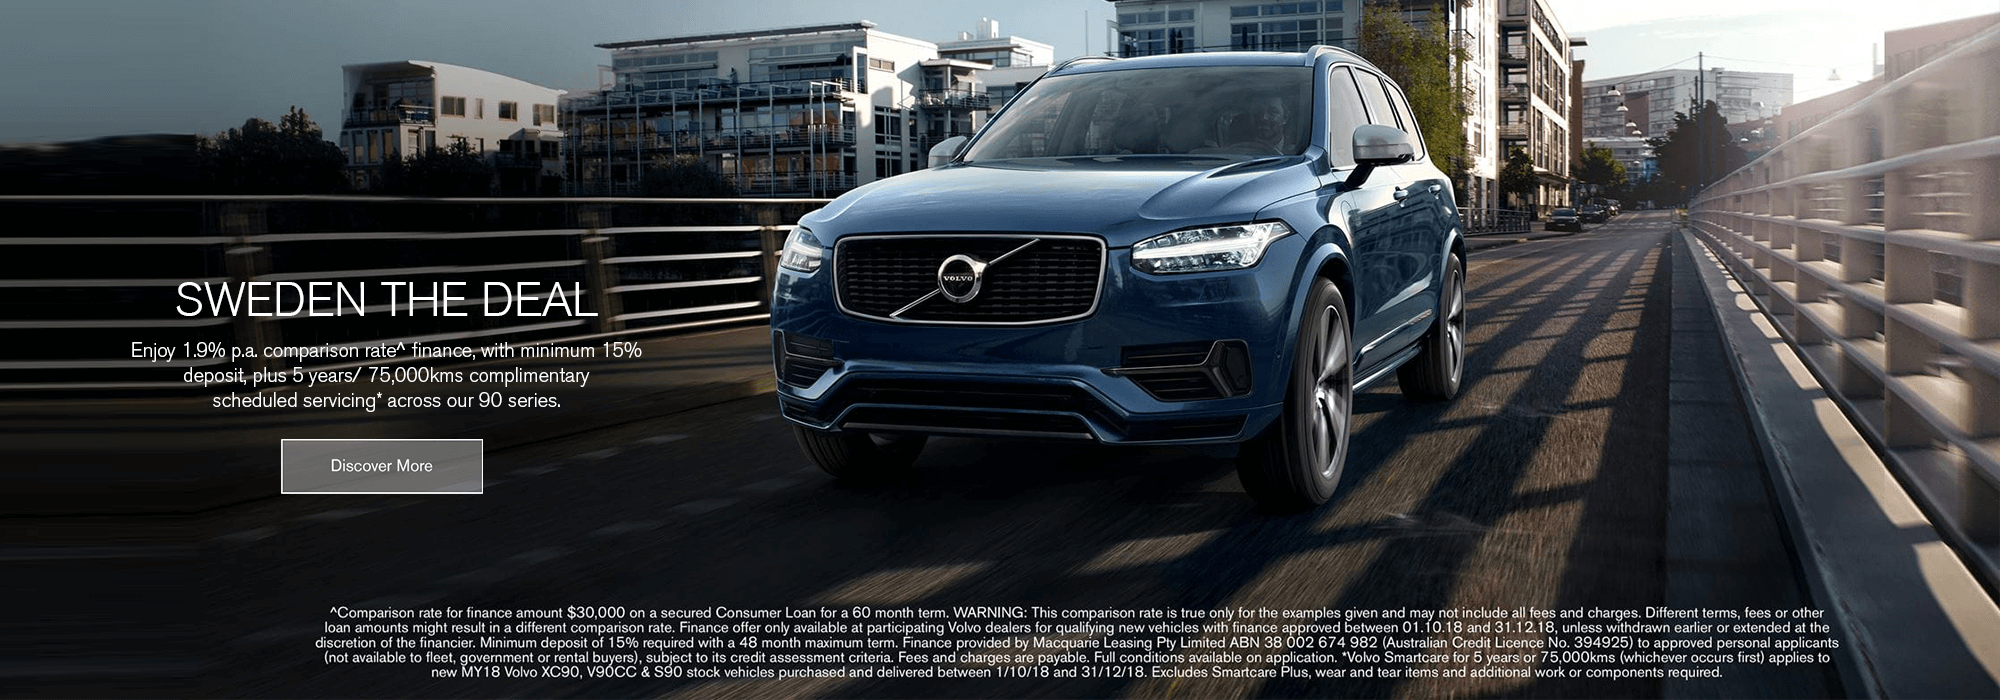 Visit your local Volvo dealer before September 30 to take advantage of 1.9%­ p.a. comparison rate^ finance with a 15% deposit across the entire Volvo 90 series, but do it before September 30. Offer on while stocks last.